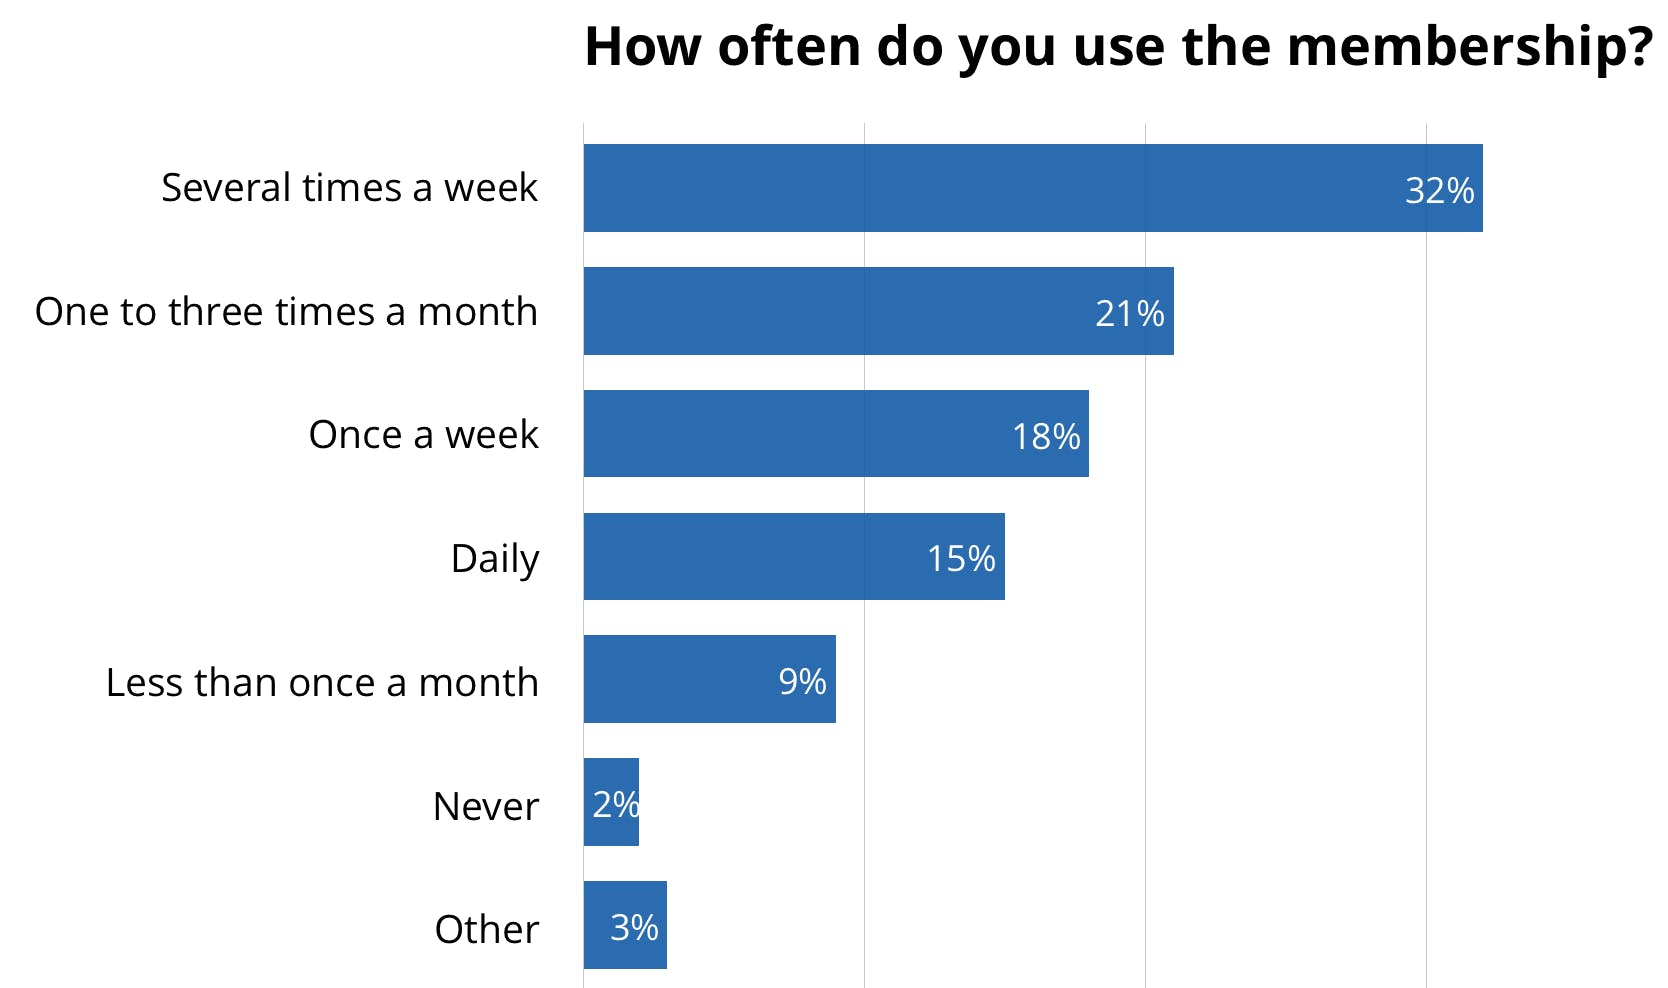 How often do you use the membership?